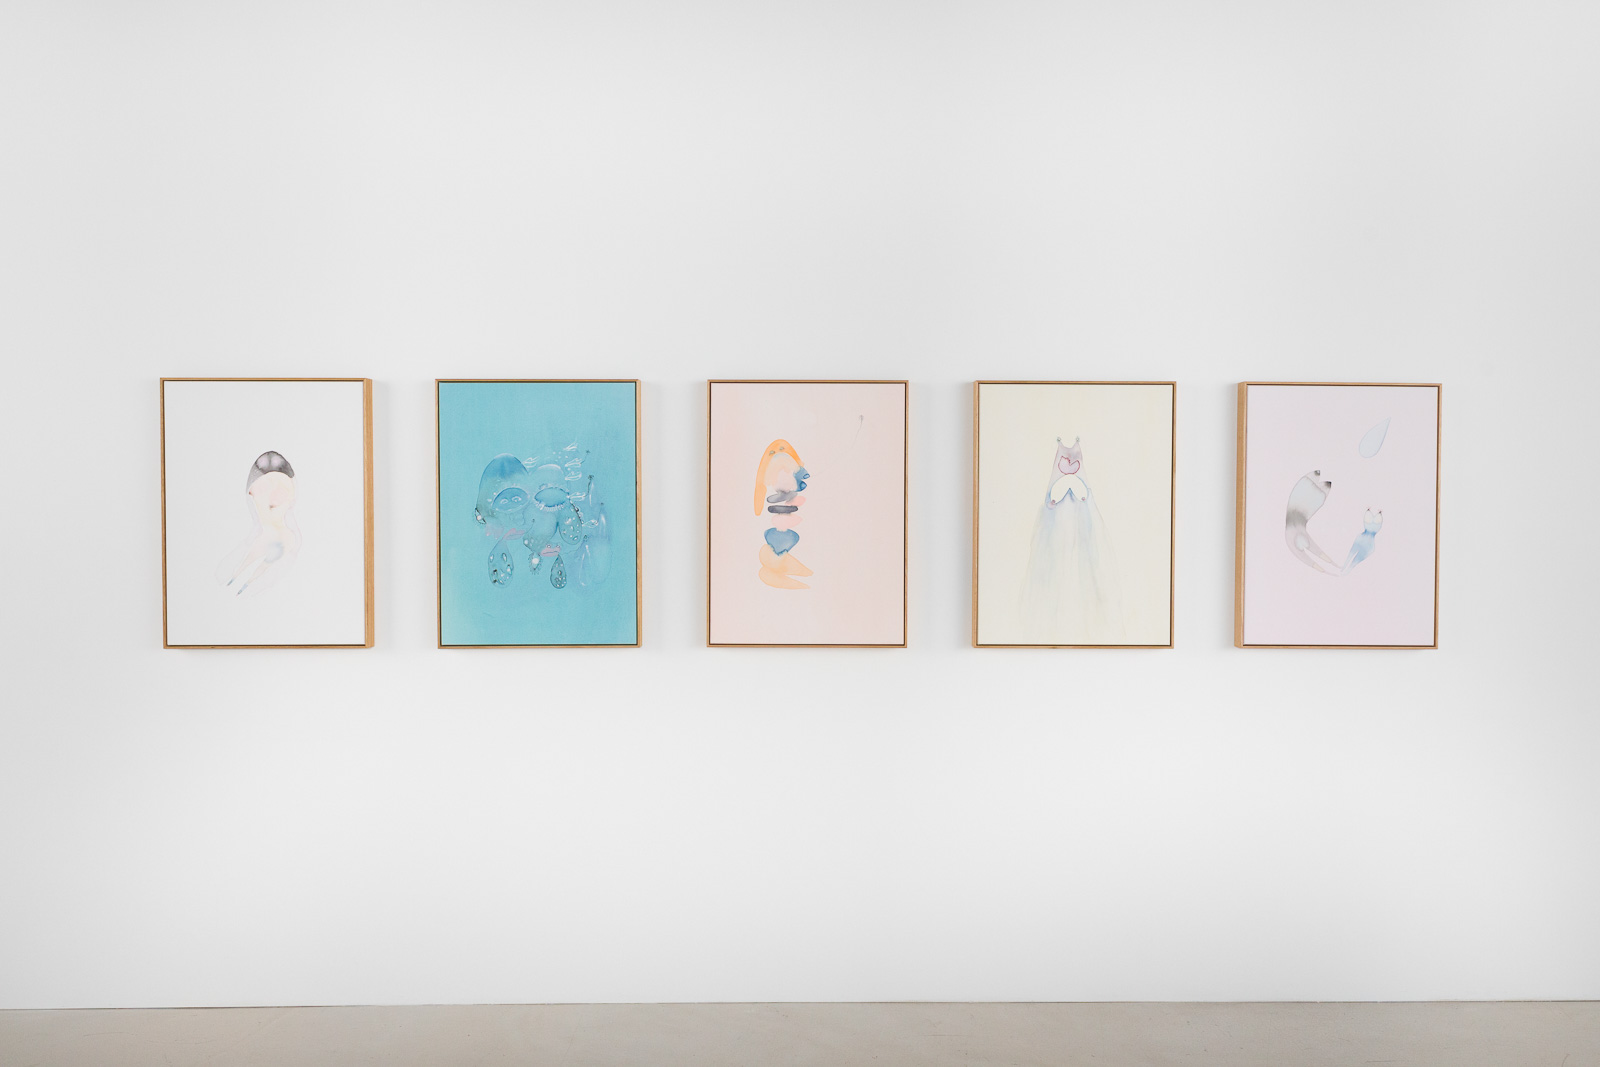 Tara Marynowsky: (5 works pictured from left to right): 'Marshmallow', 'Brain Rain', 'Goldie', 'Rain Man', 'Planet Claire'